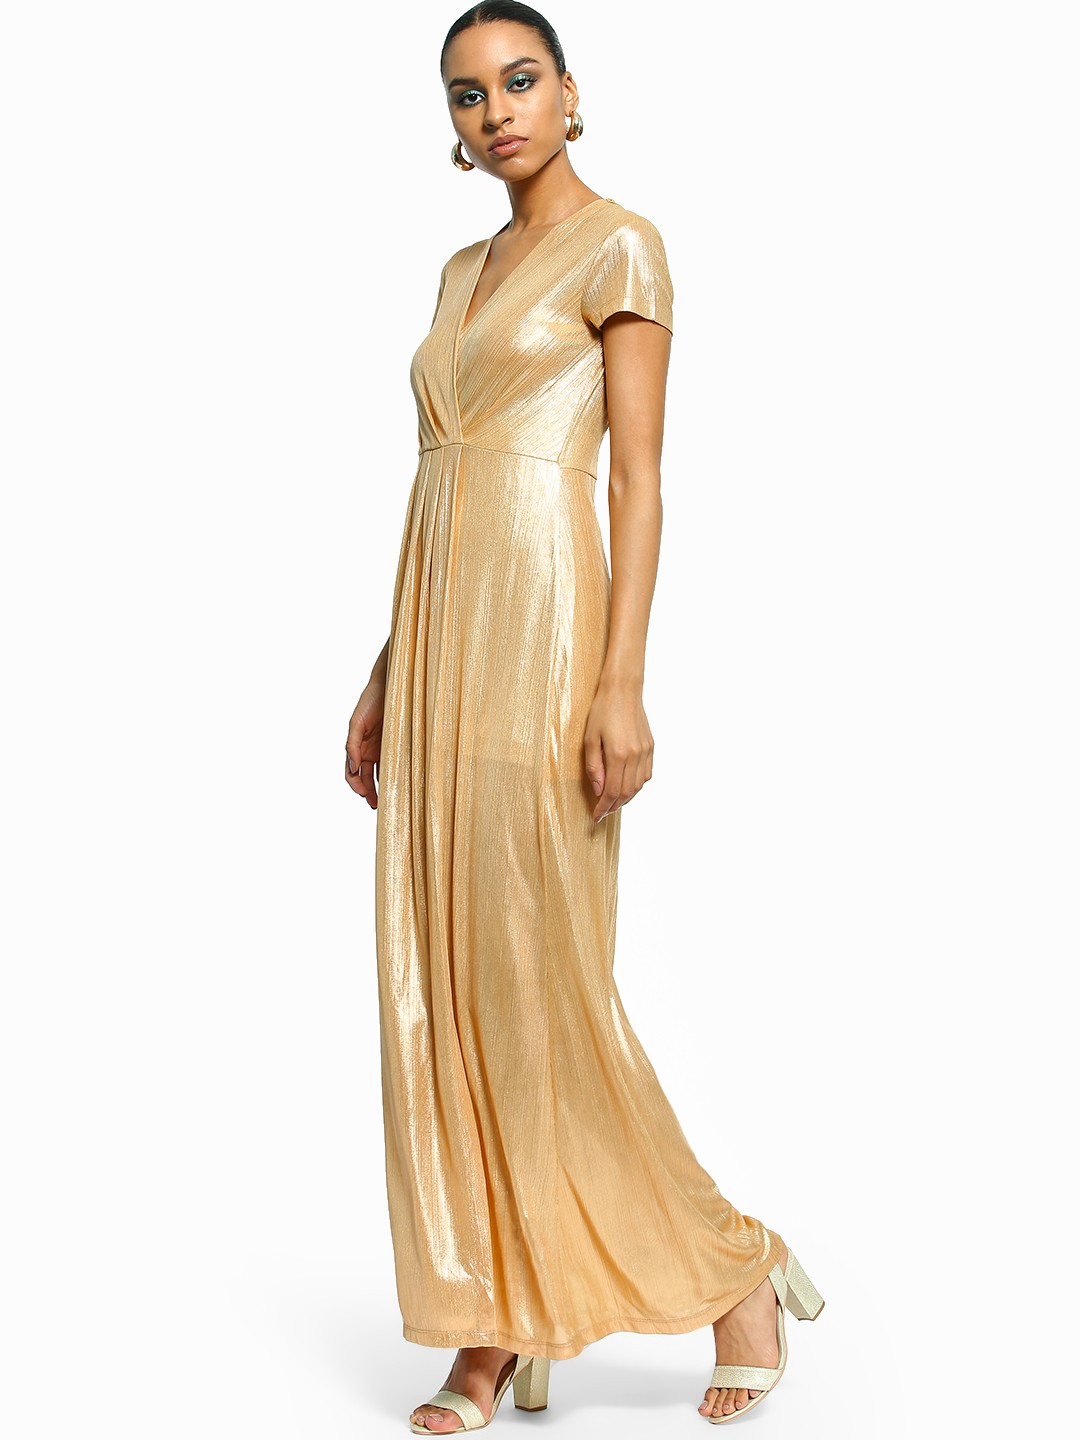 Flam Mode Gold Thigh-High Split Metallic Maxi Dress 1